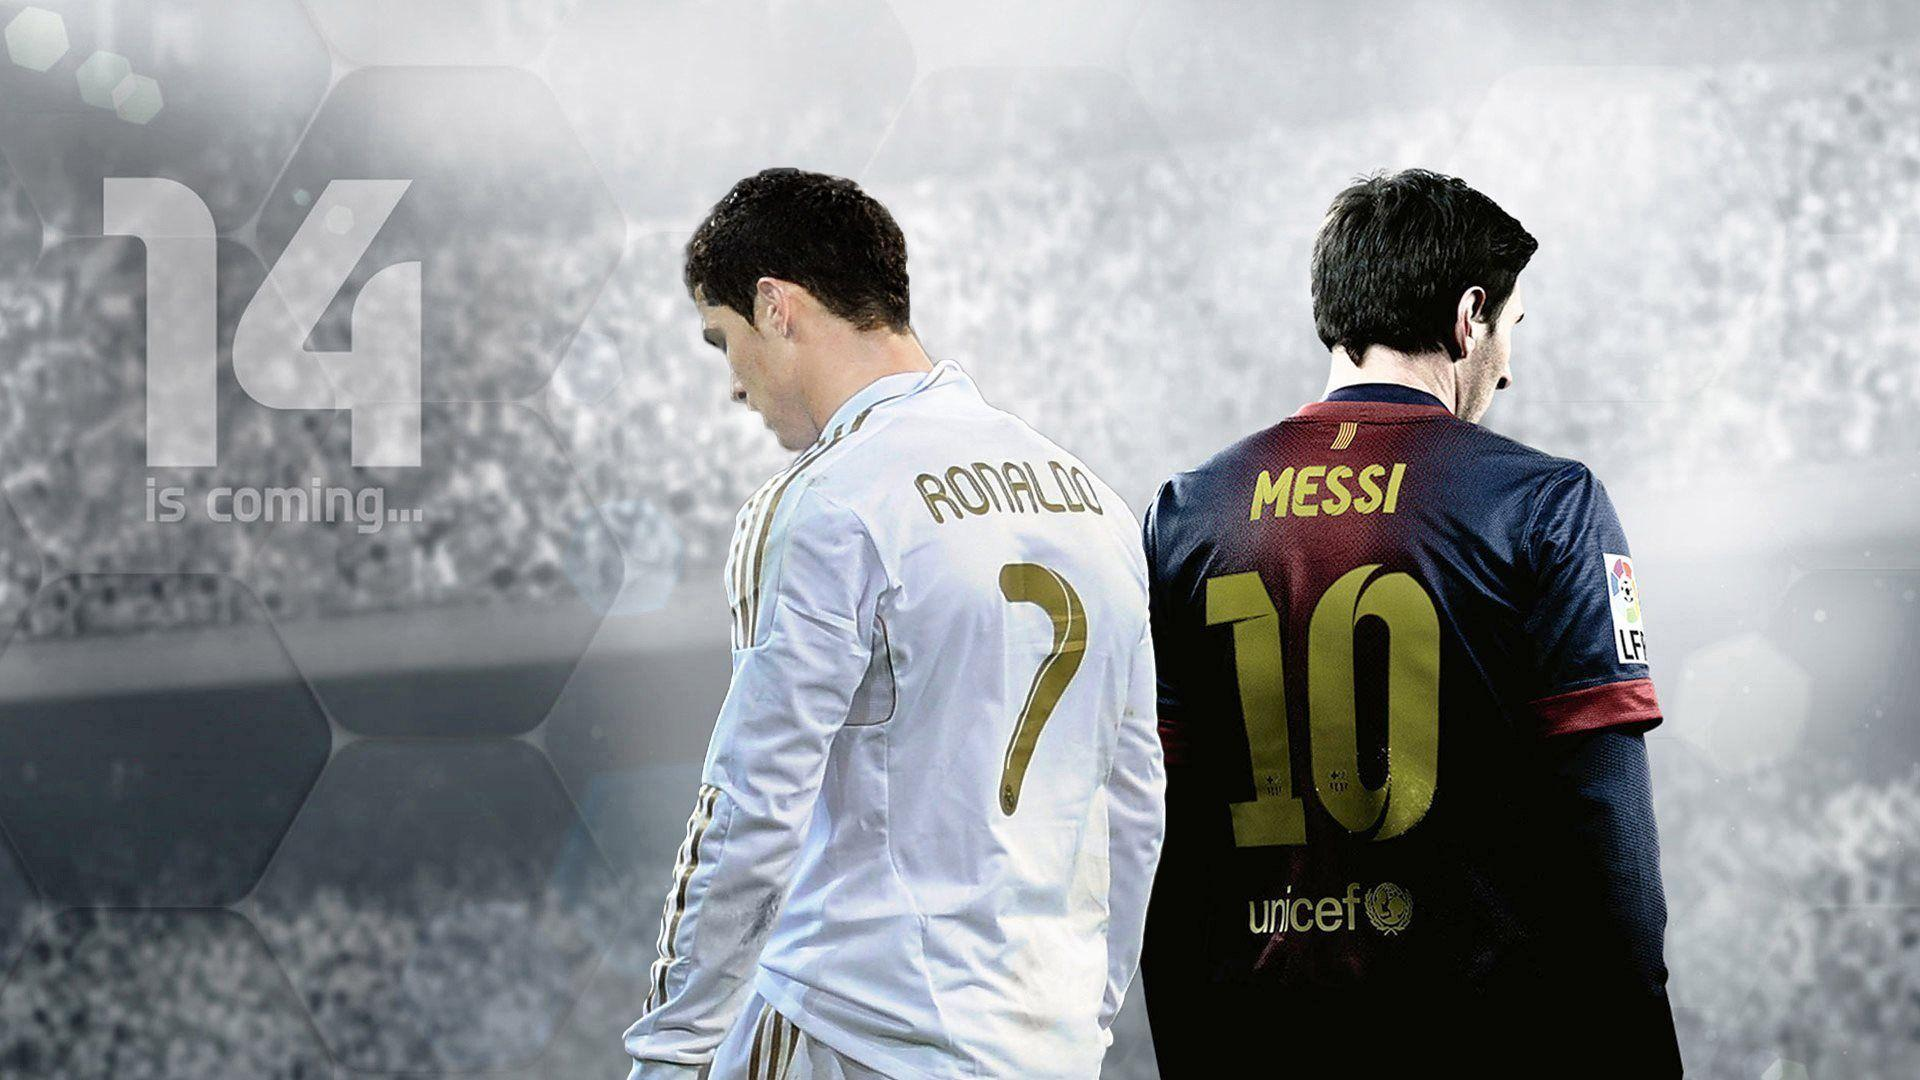 Messi Y Cr7 Wallpaper 2020